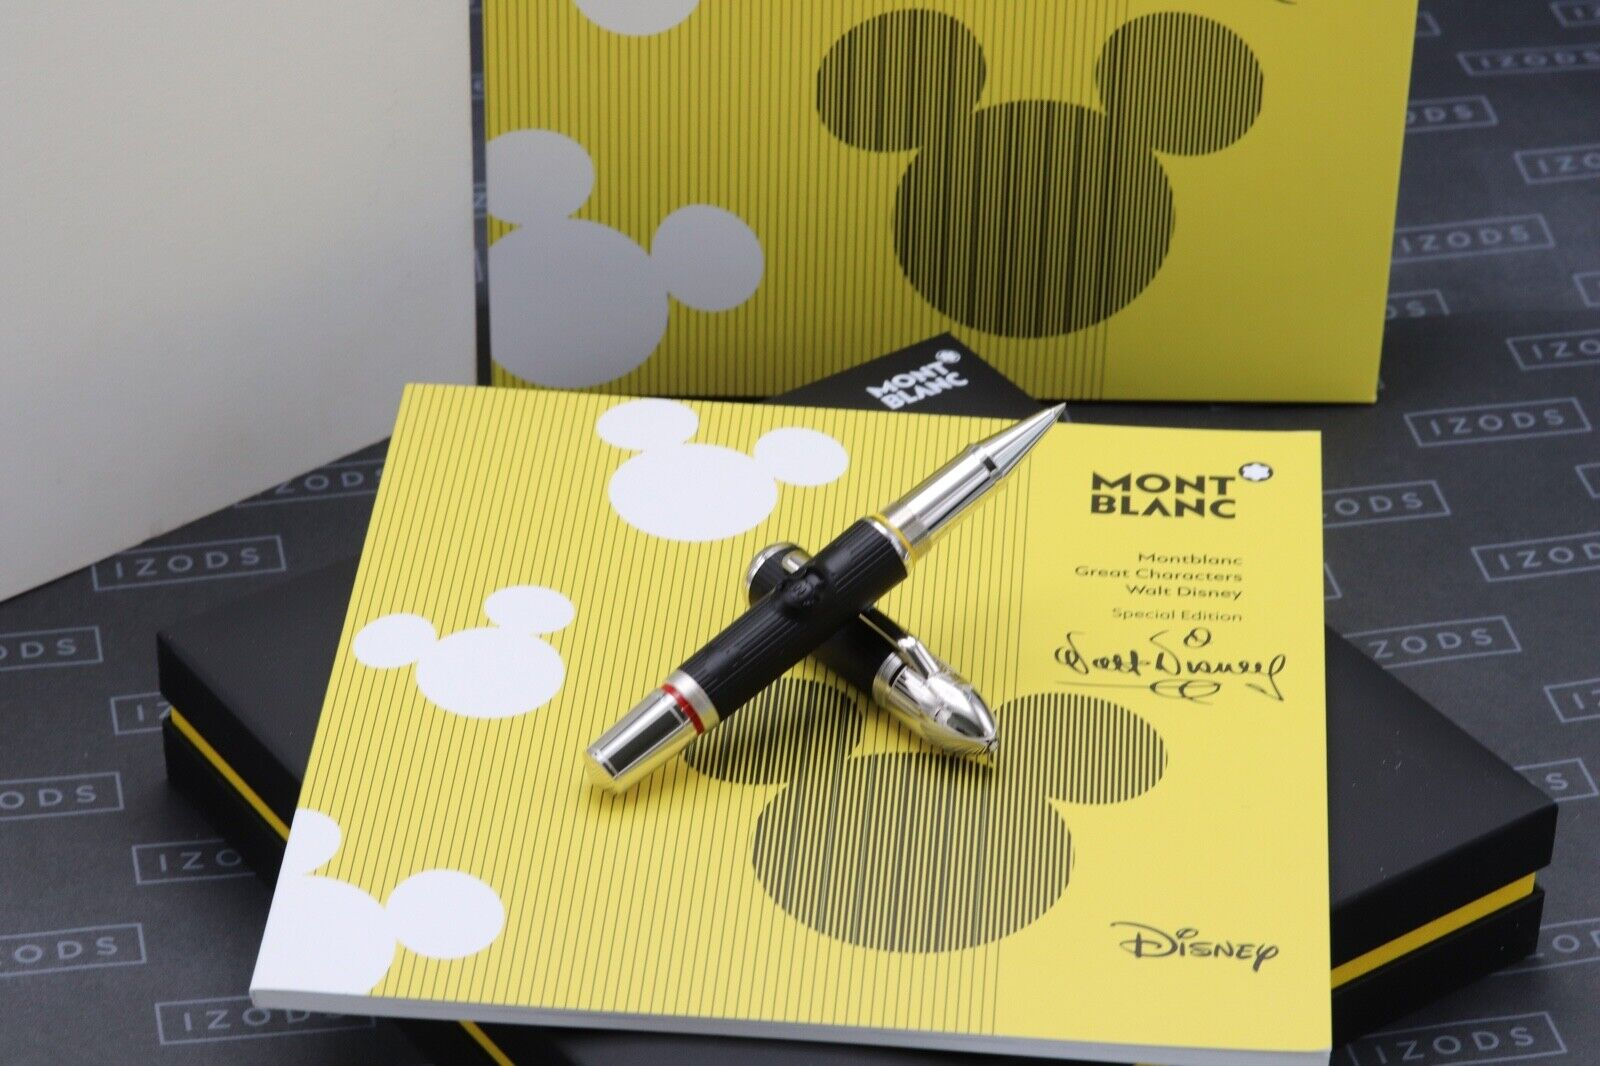 Montblanc Great Characters Walt Disney Special Edition Rollerball Pen - UNUSED